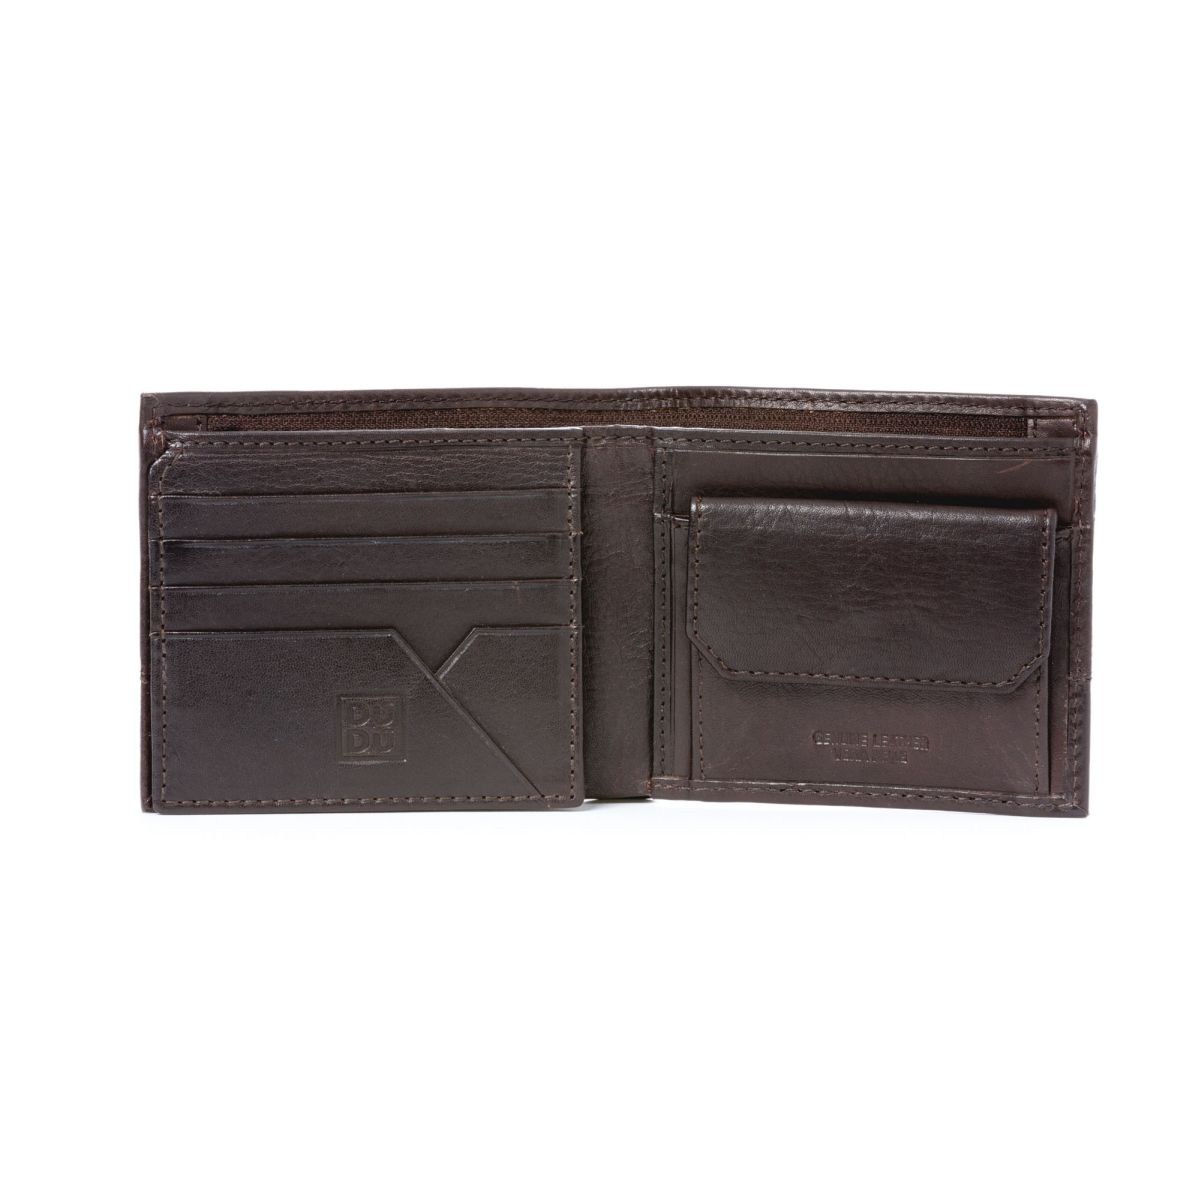 DuDu Unique Leather Wallet With Coin Purse - Black